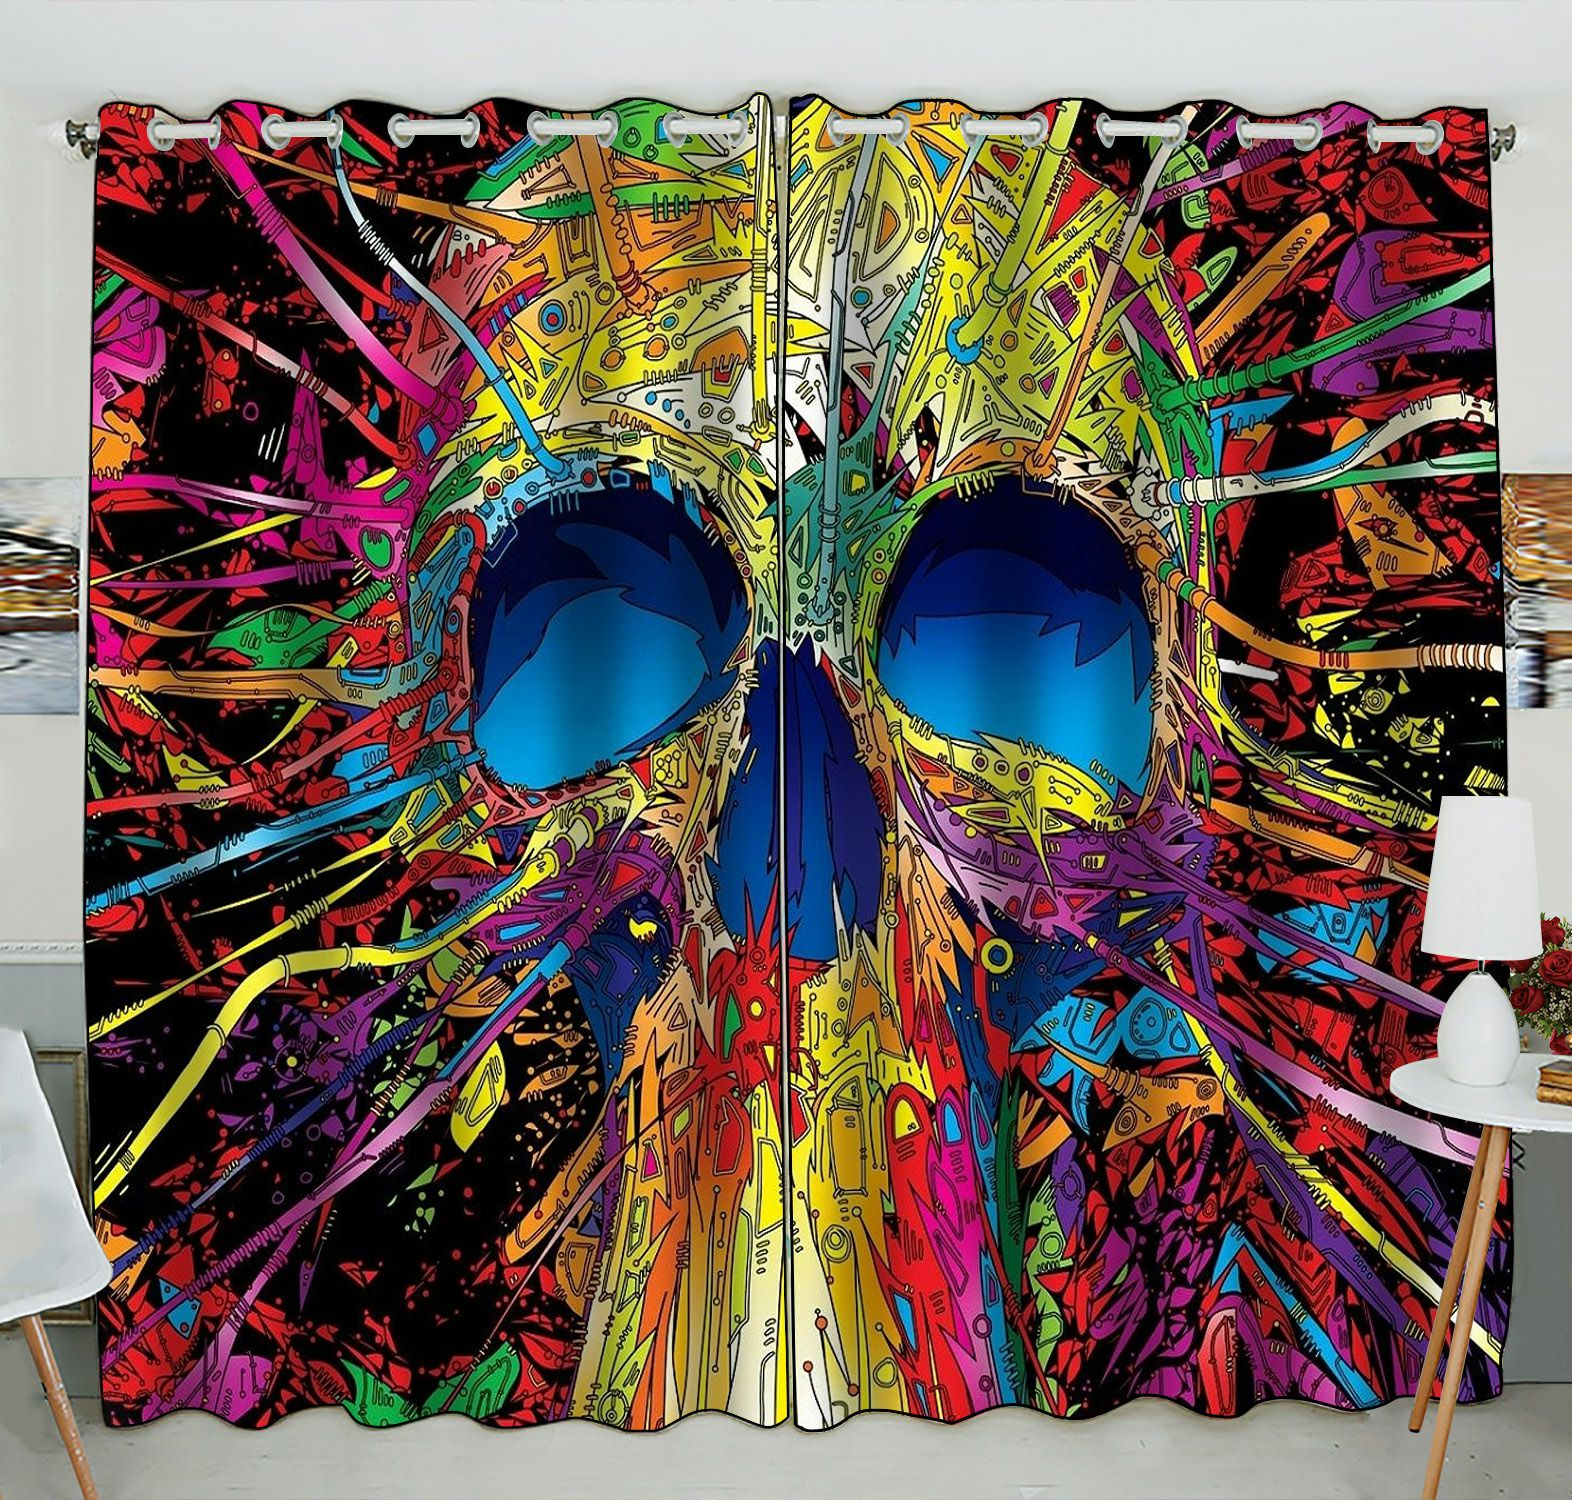 ZKGK Skull Art Window Curtain Drapery/Panels/Treatment For Living Room Bedroom Kids Rooms 52x84 inches Two Panel